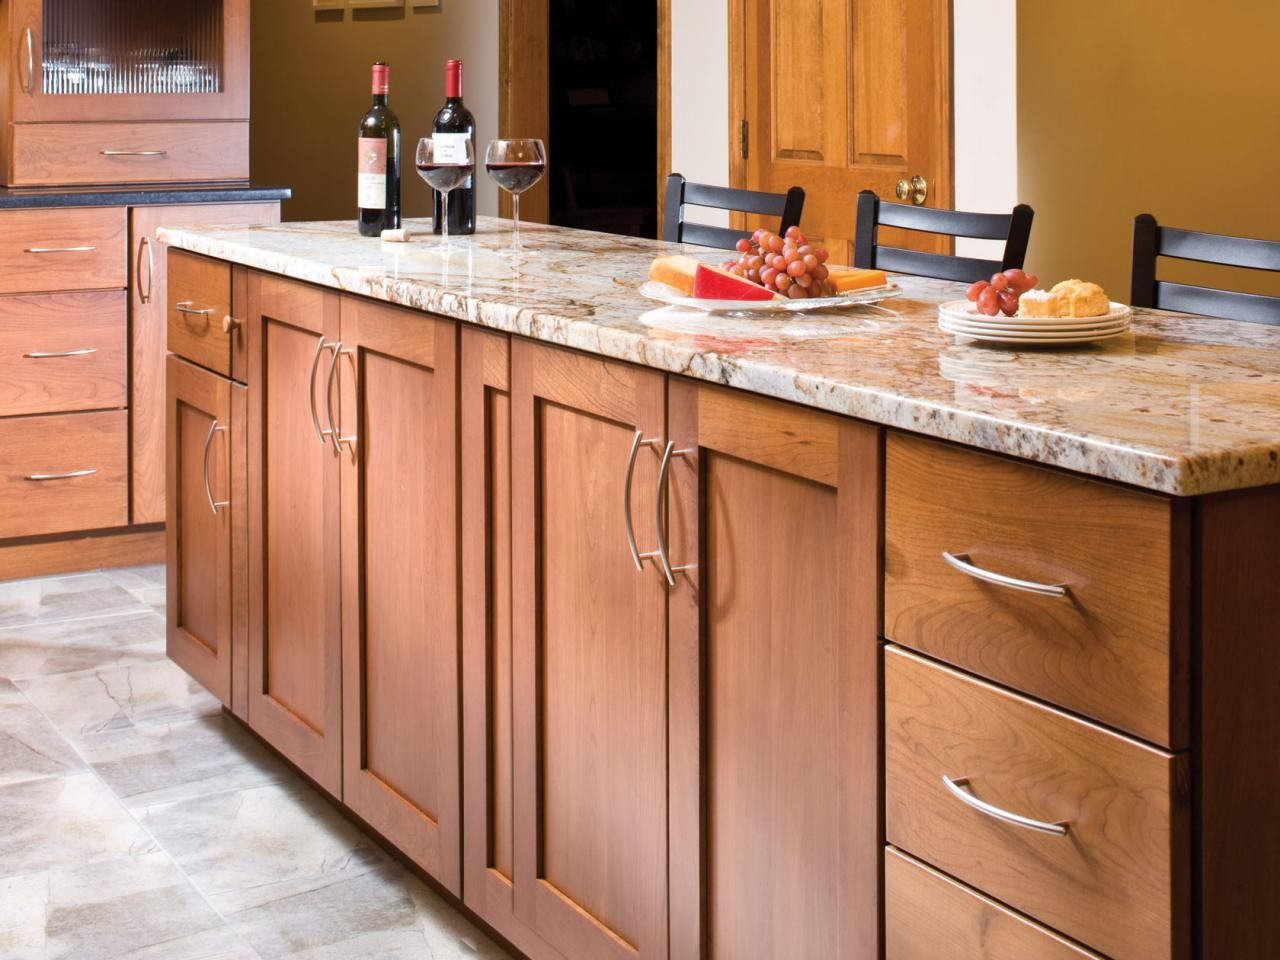 Kitchen Cabinet Styles and Trends | Layout, Material und Designs